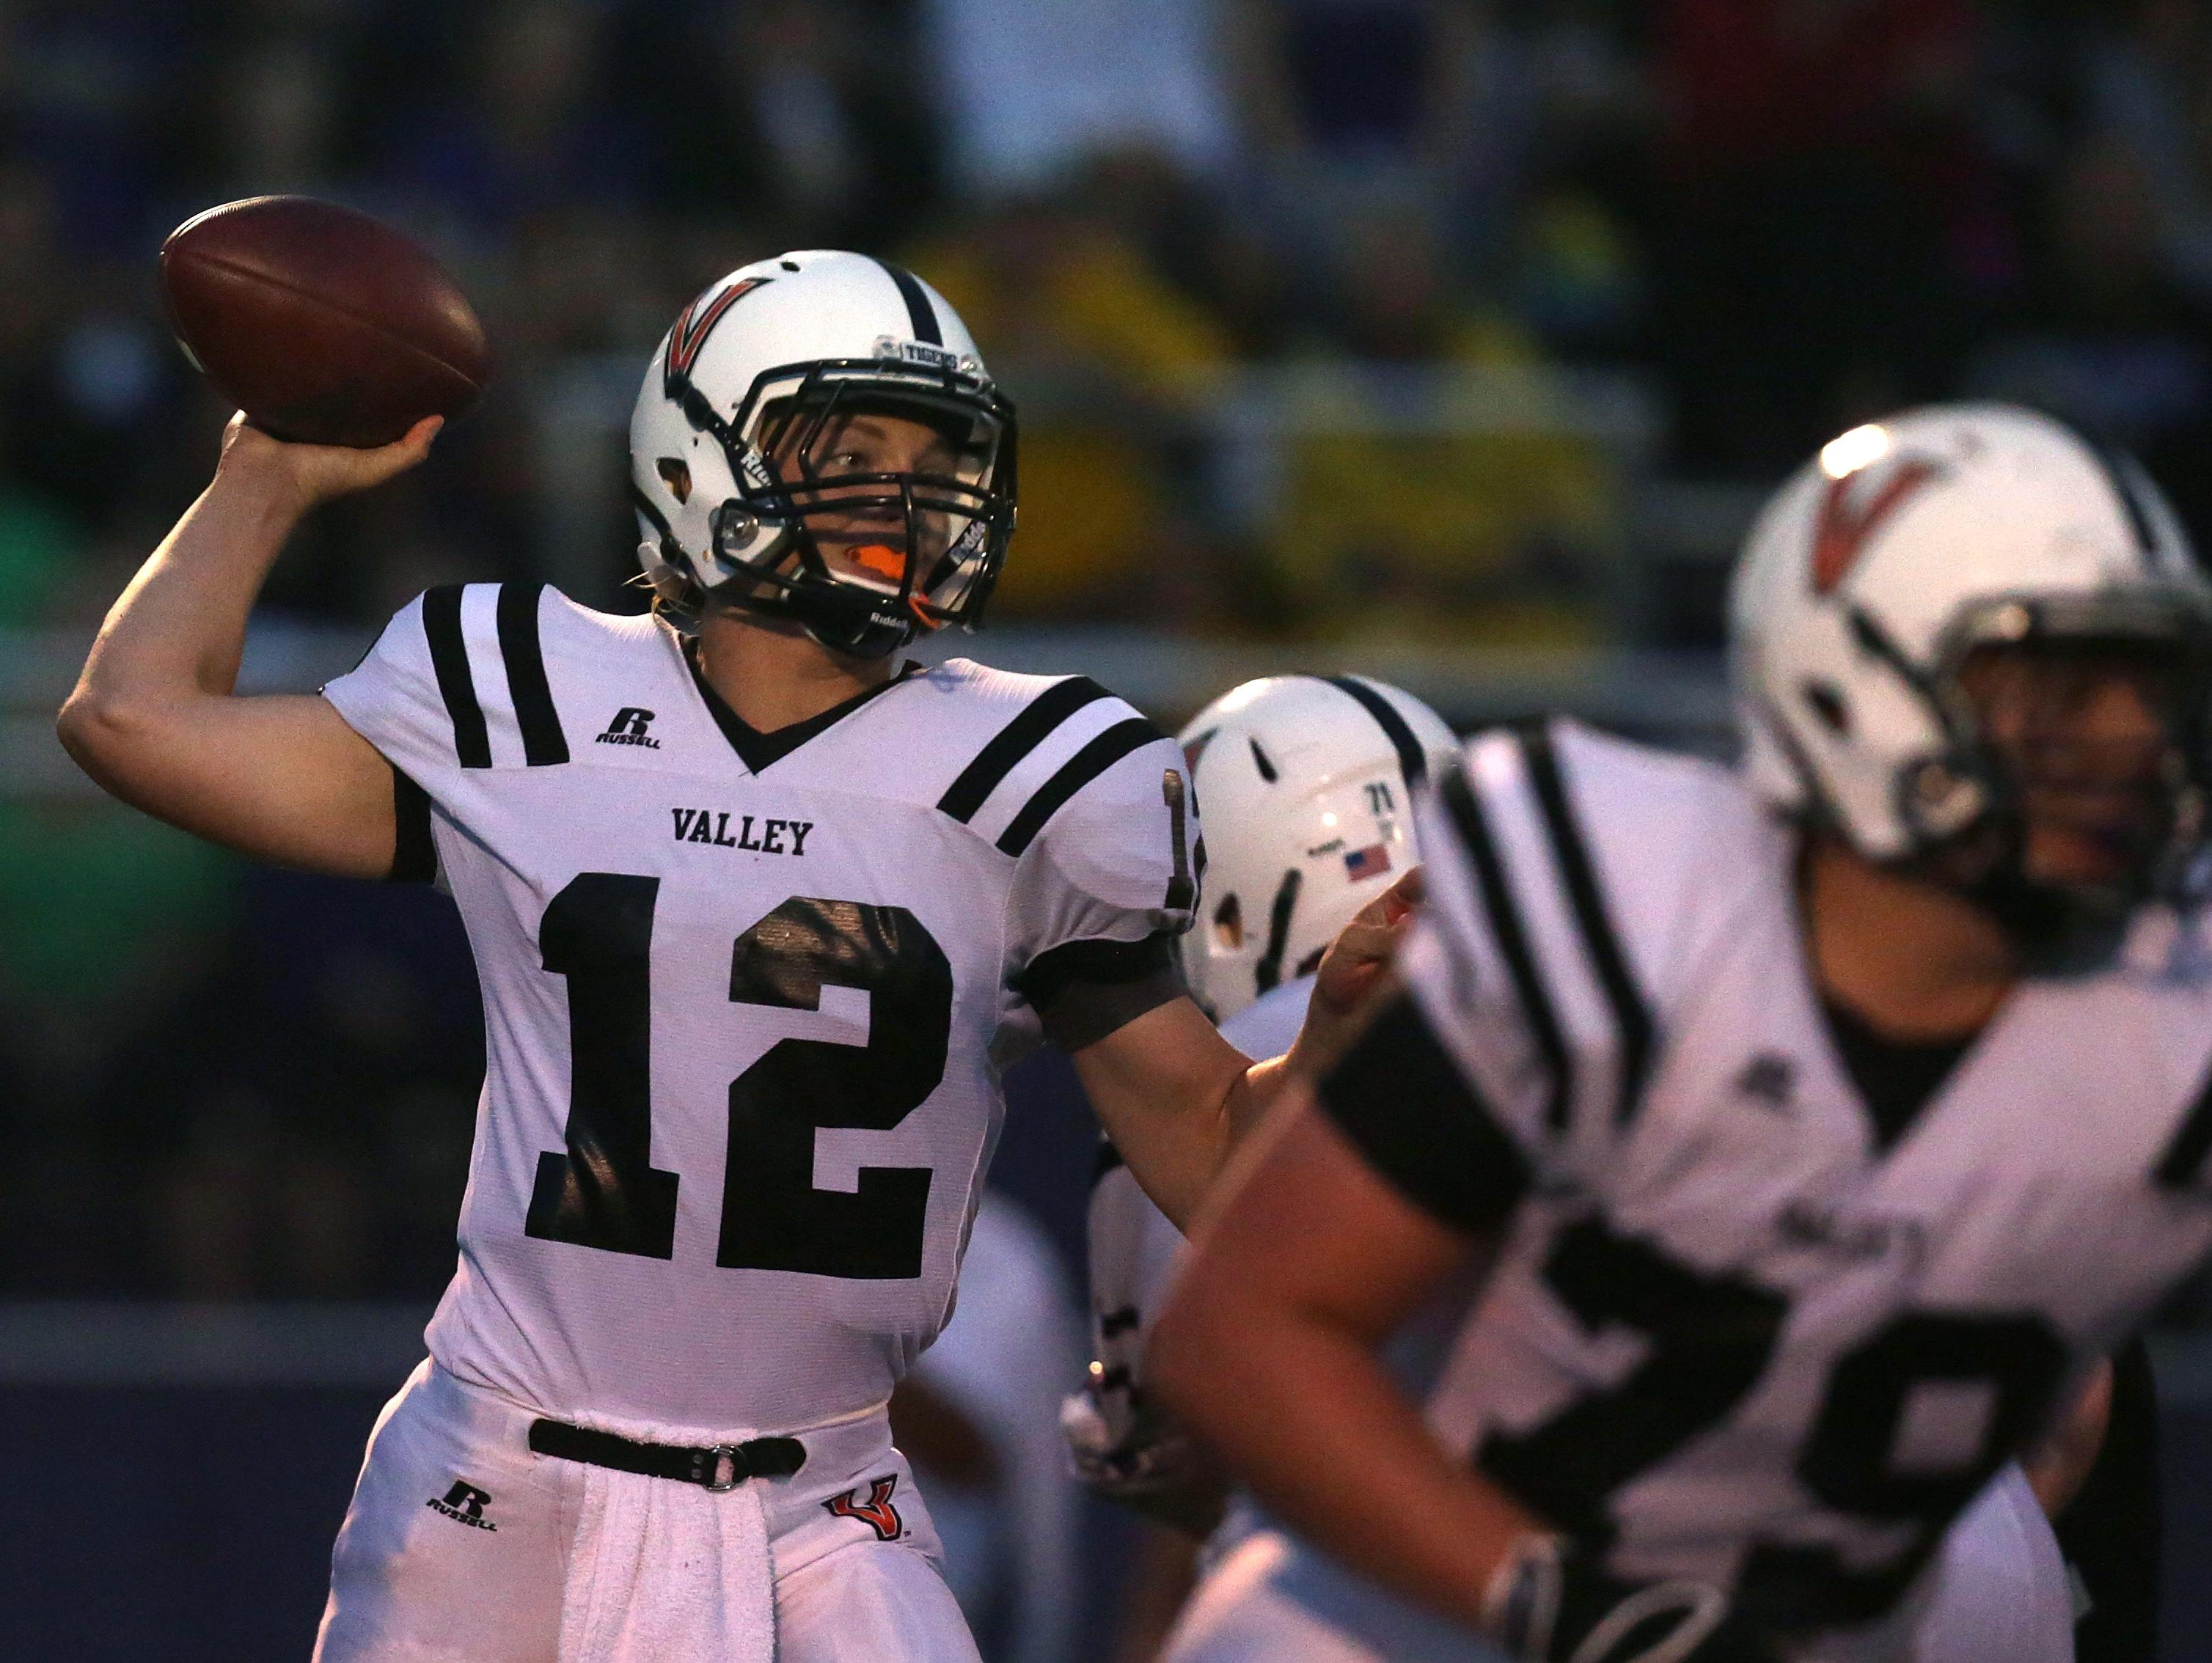 """Valley junior quarterback Rocky Lombardi added almost 10 yards to his throwing distance this past offseason. He also visited nine Division I quarterback camps. """"One of the adjustments I made was keeping my non-throwing hand close to my body,"""" he said."""